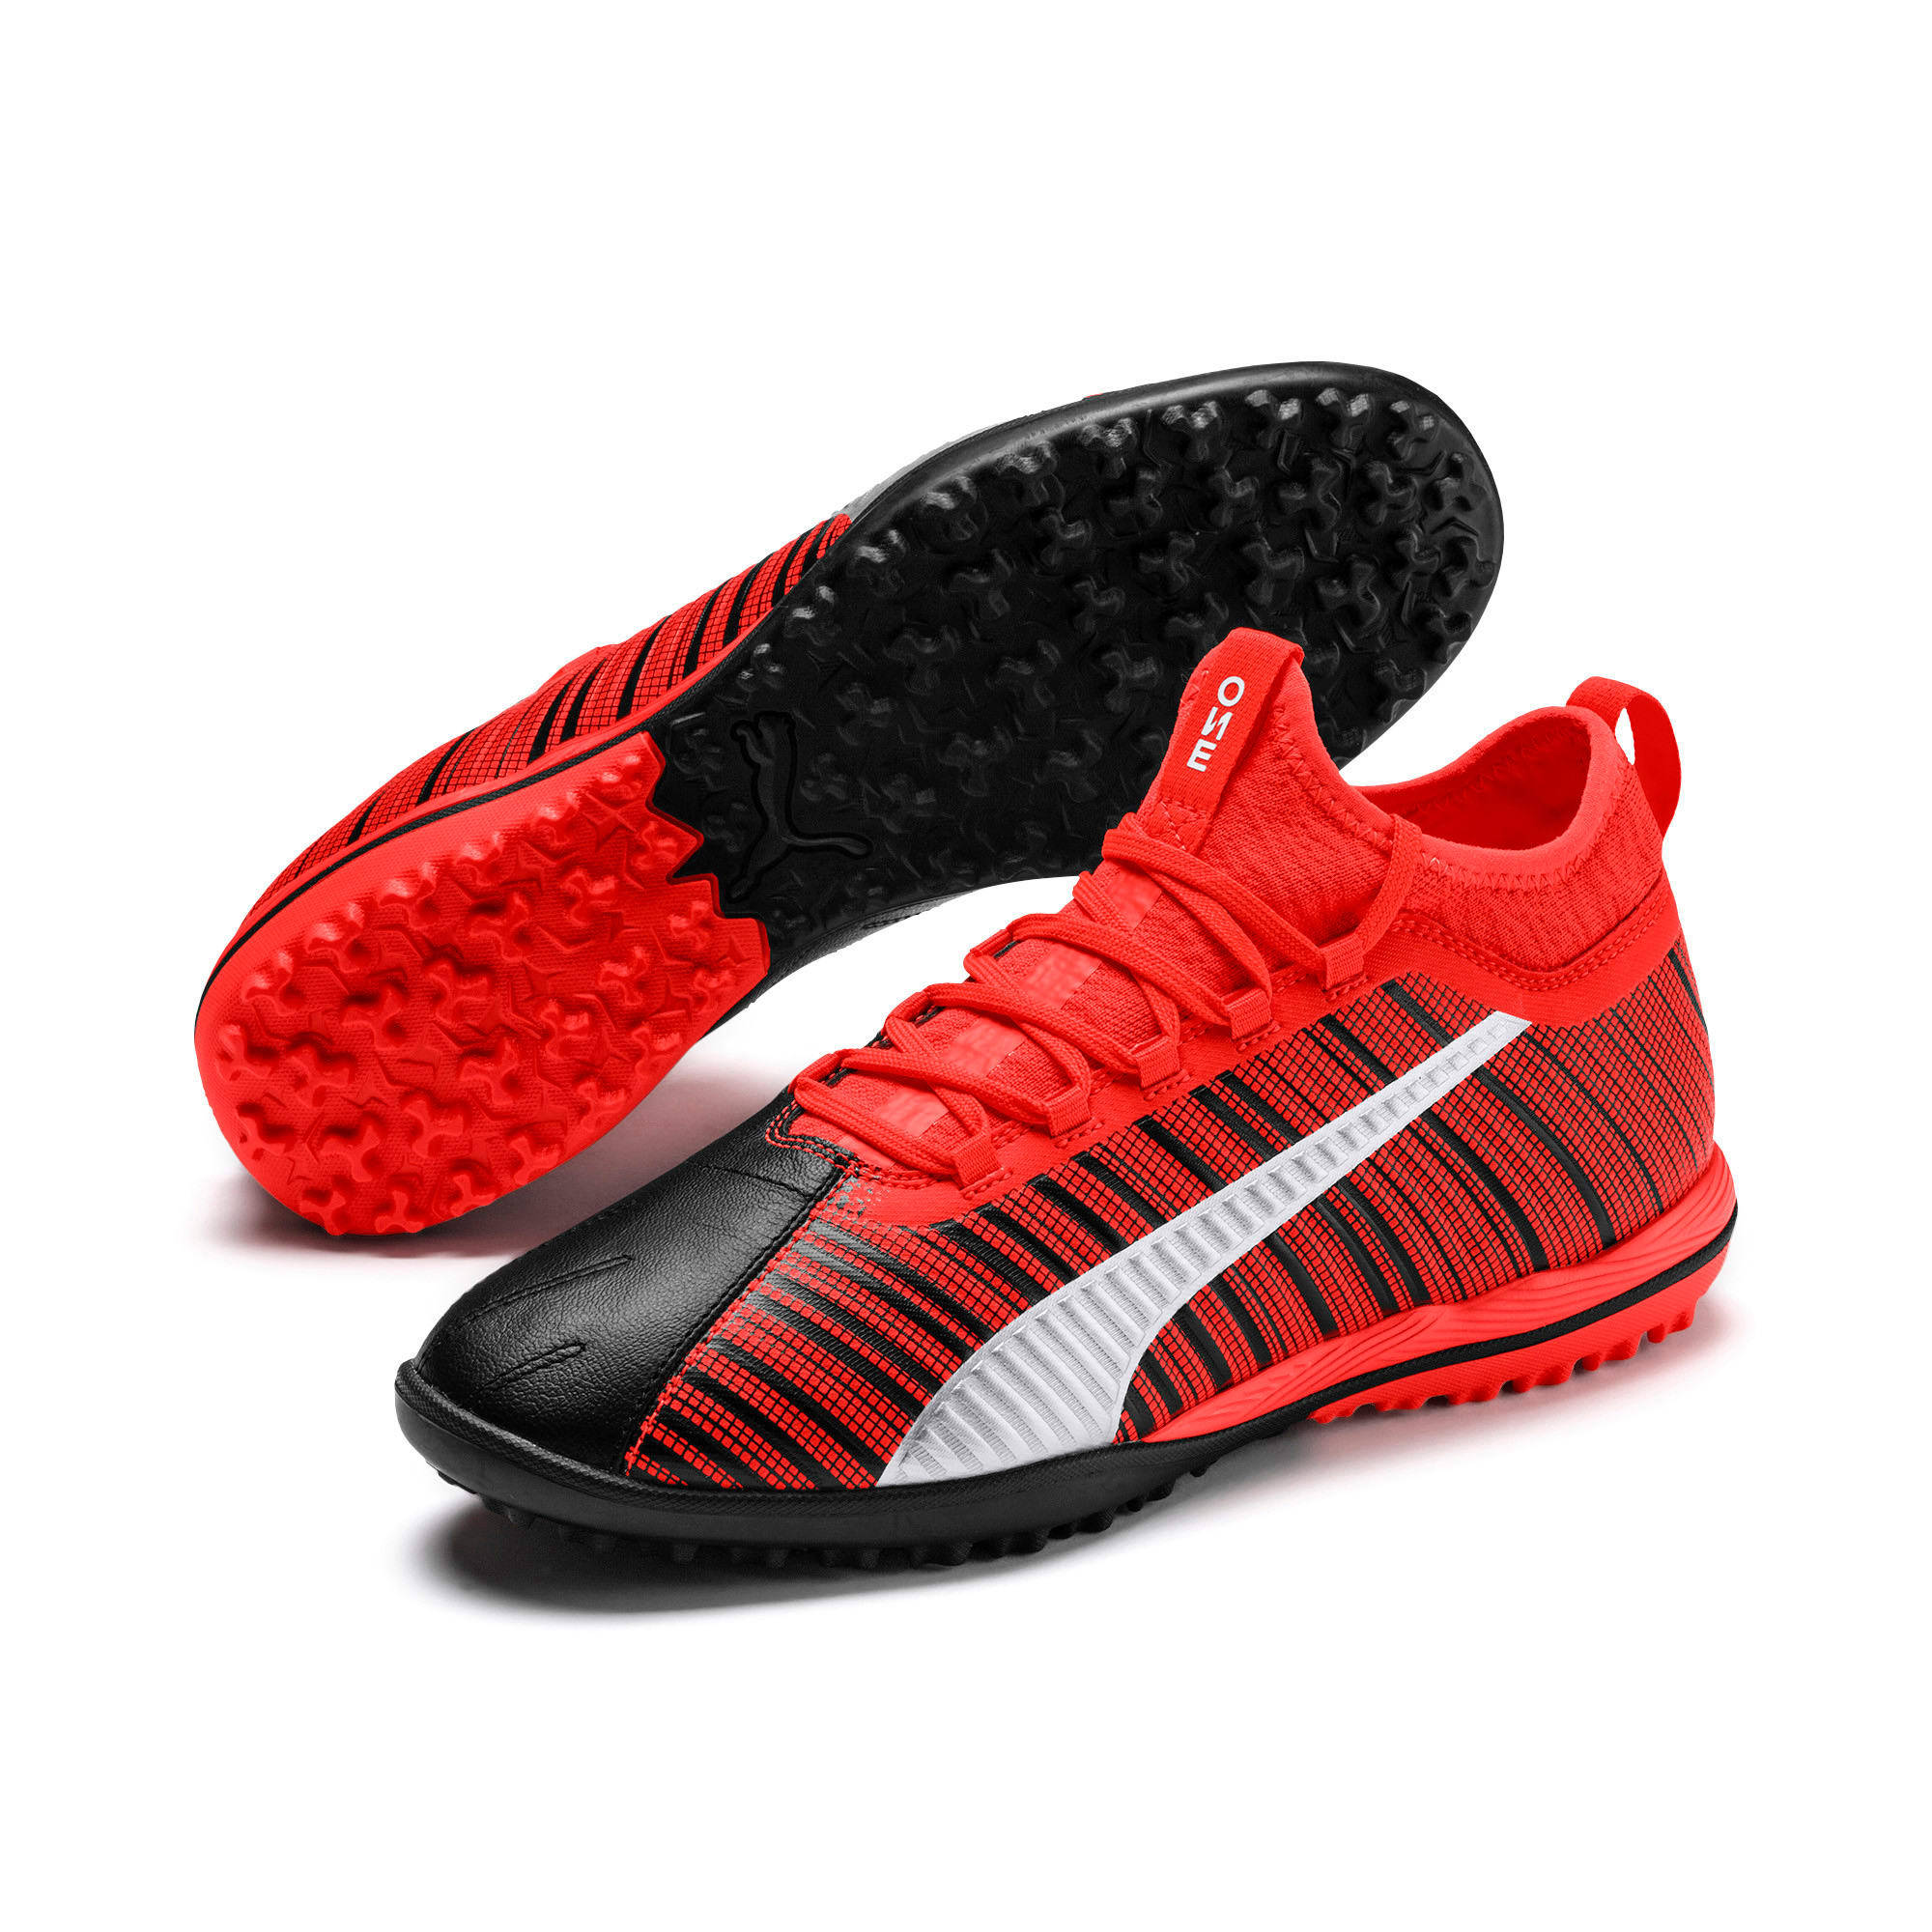 Thumbnail 3 of PUMA ONE 5.3 TT Men's Soccer Shoes, Black-Nrgy Red-Aged Silver, medium